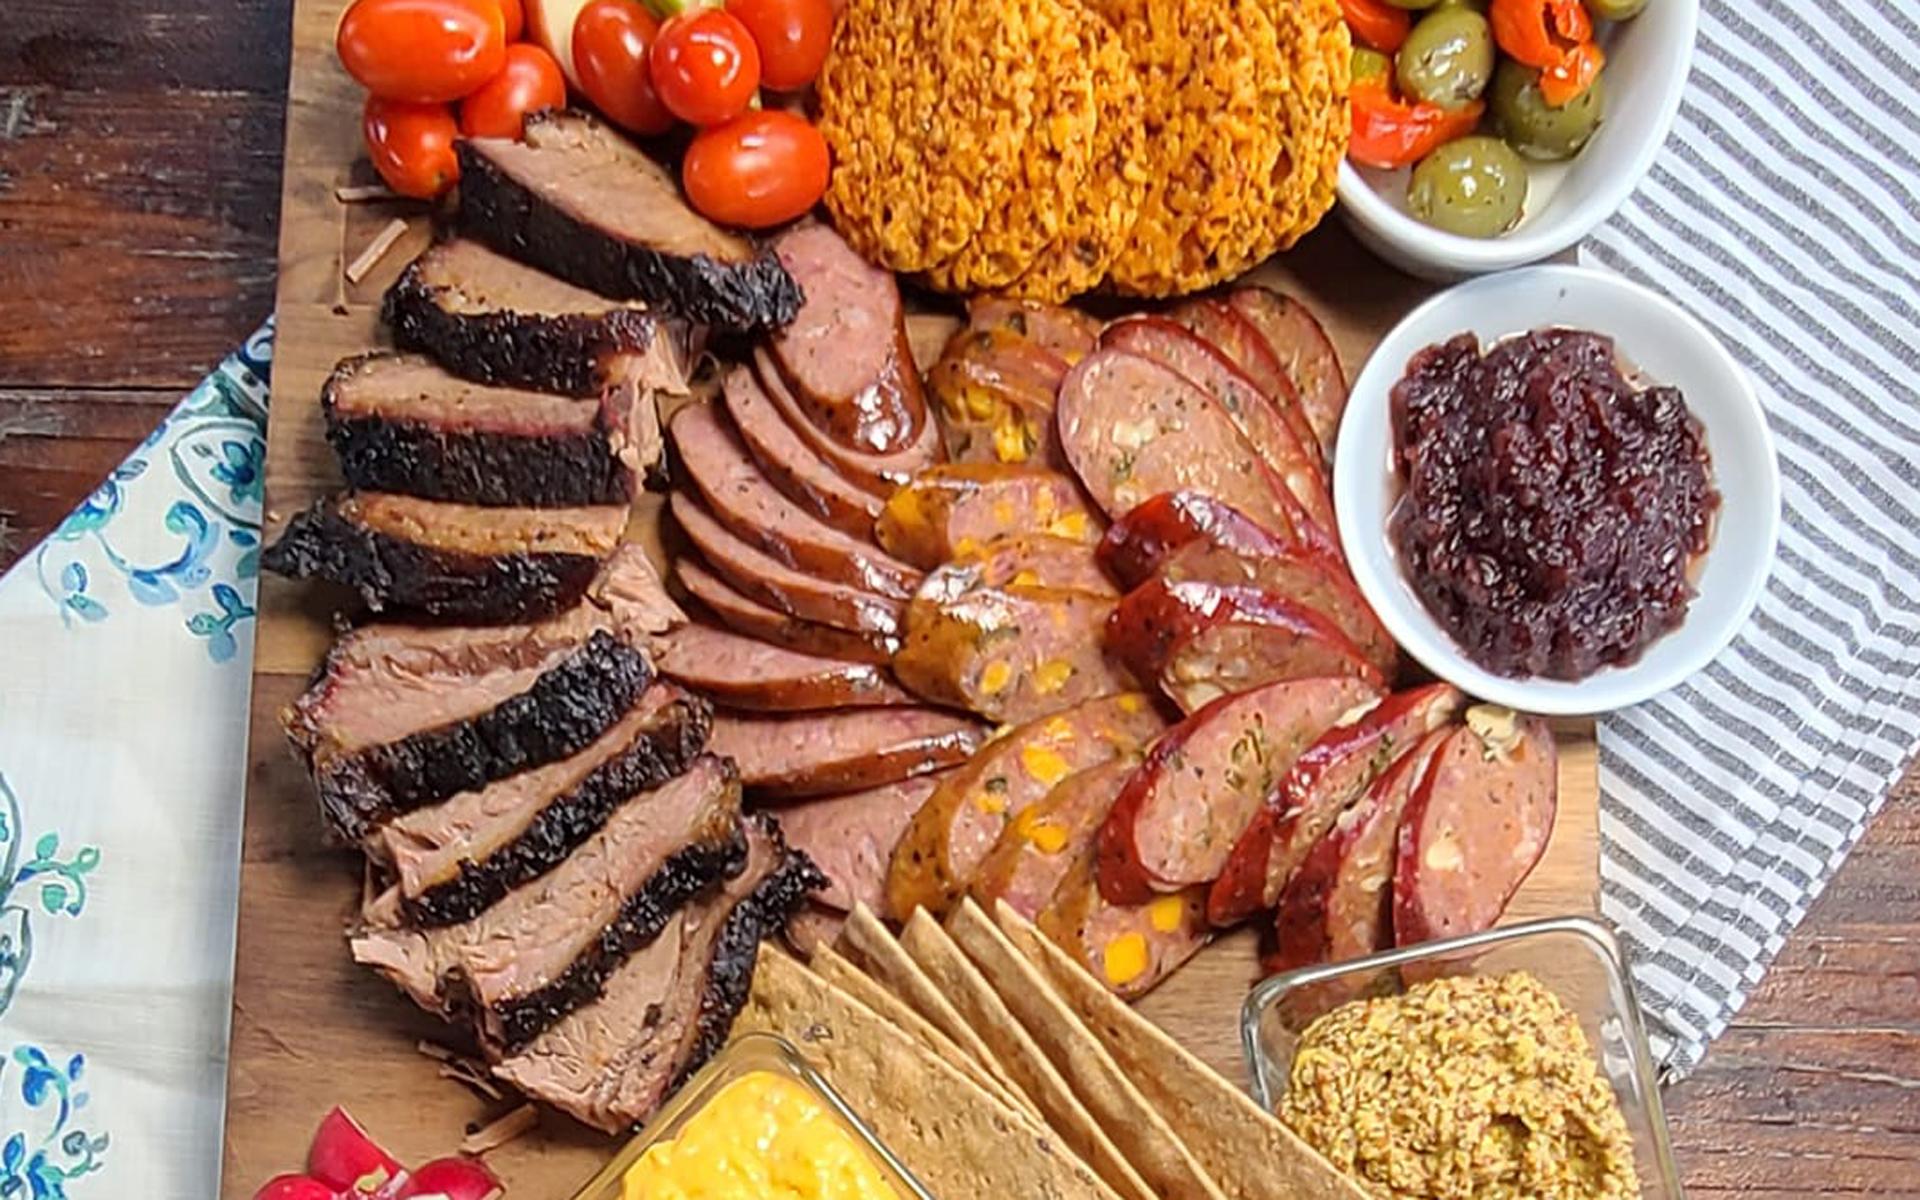 Dickey's Barbecue Pit in Hillsboro, TX at Restaurant.com